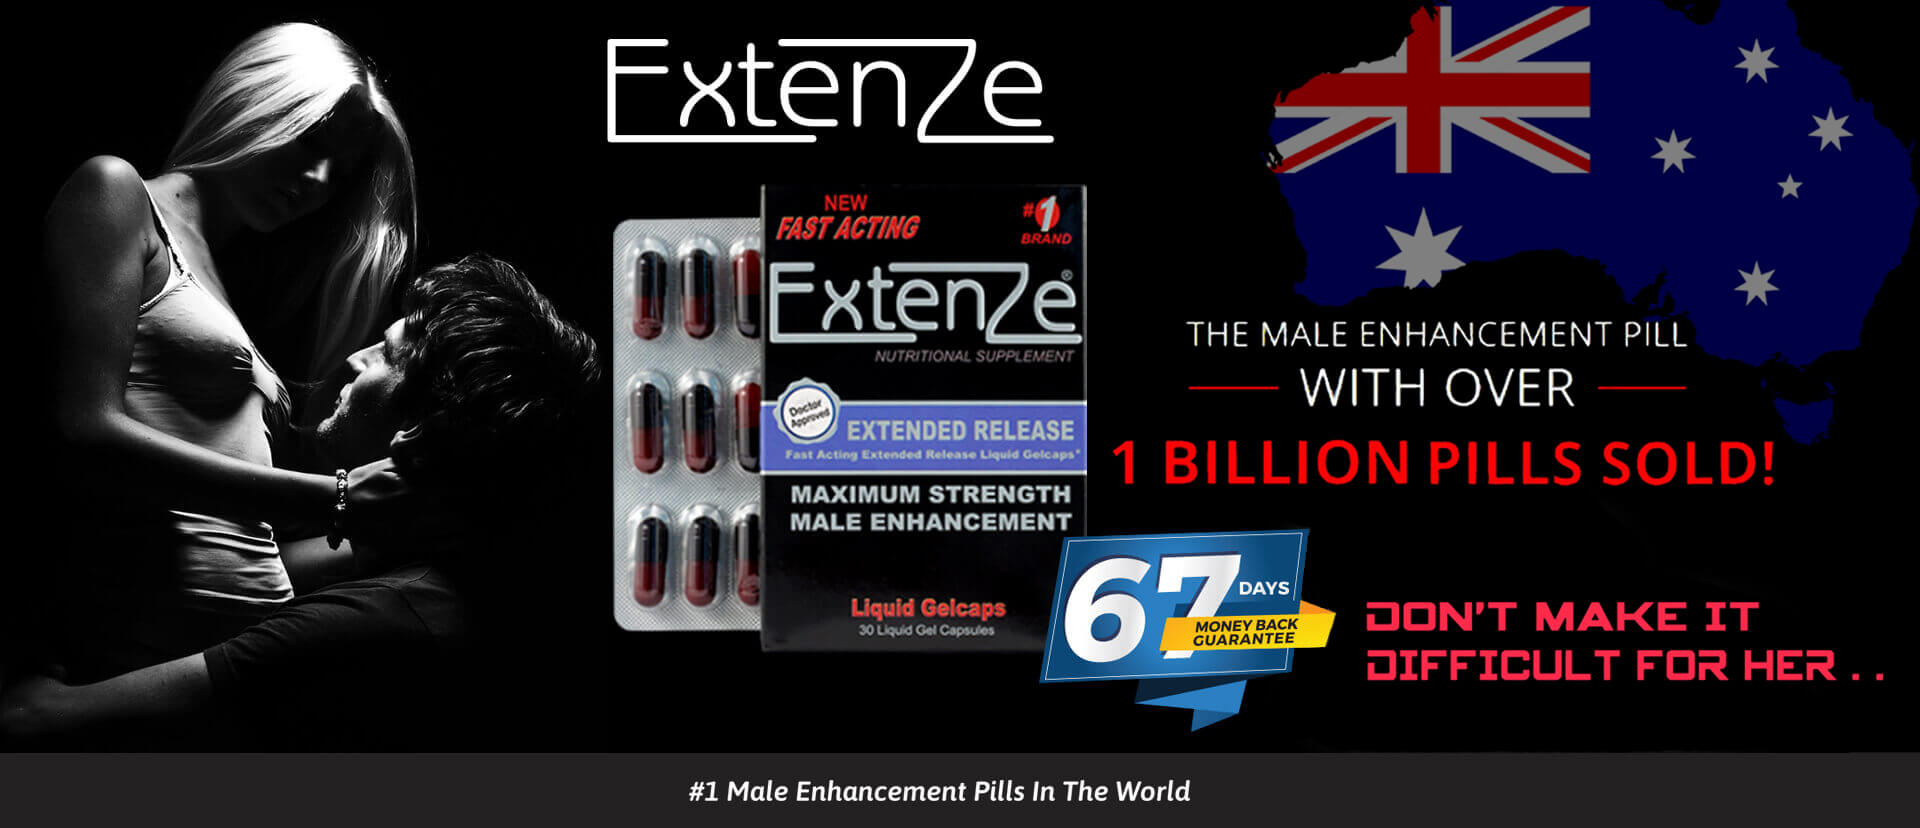 Extenze Male Enhancement Pills  features tips and tricks